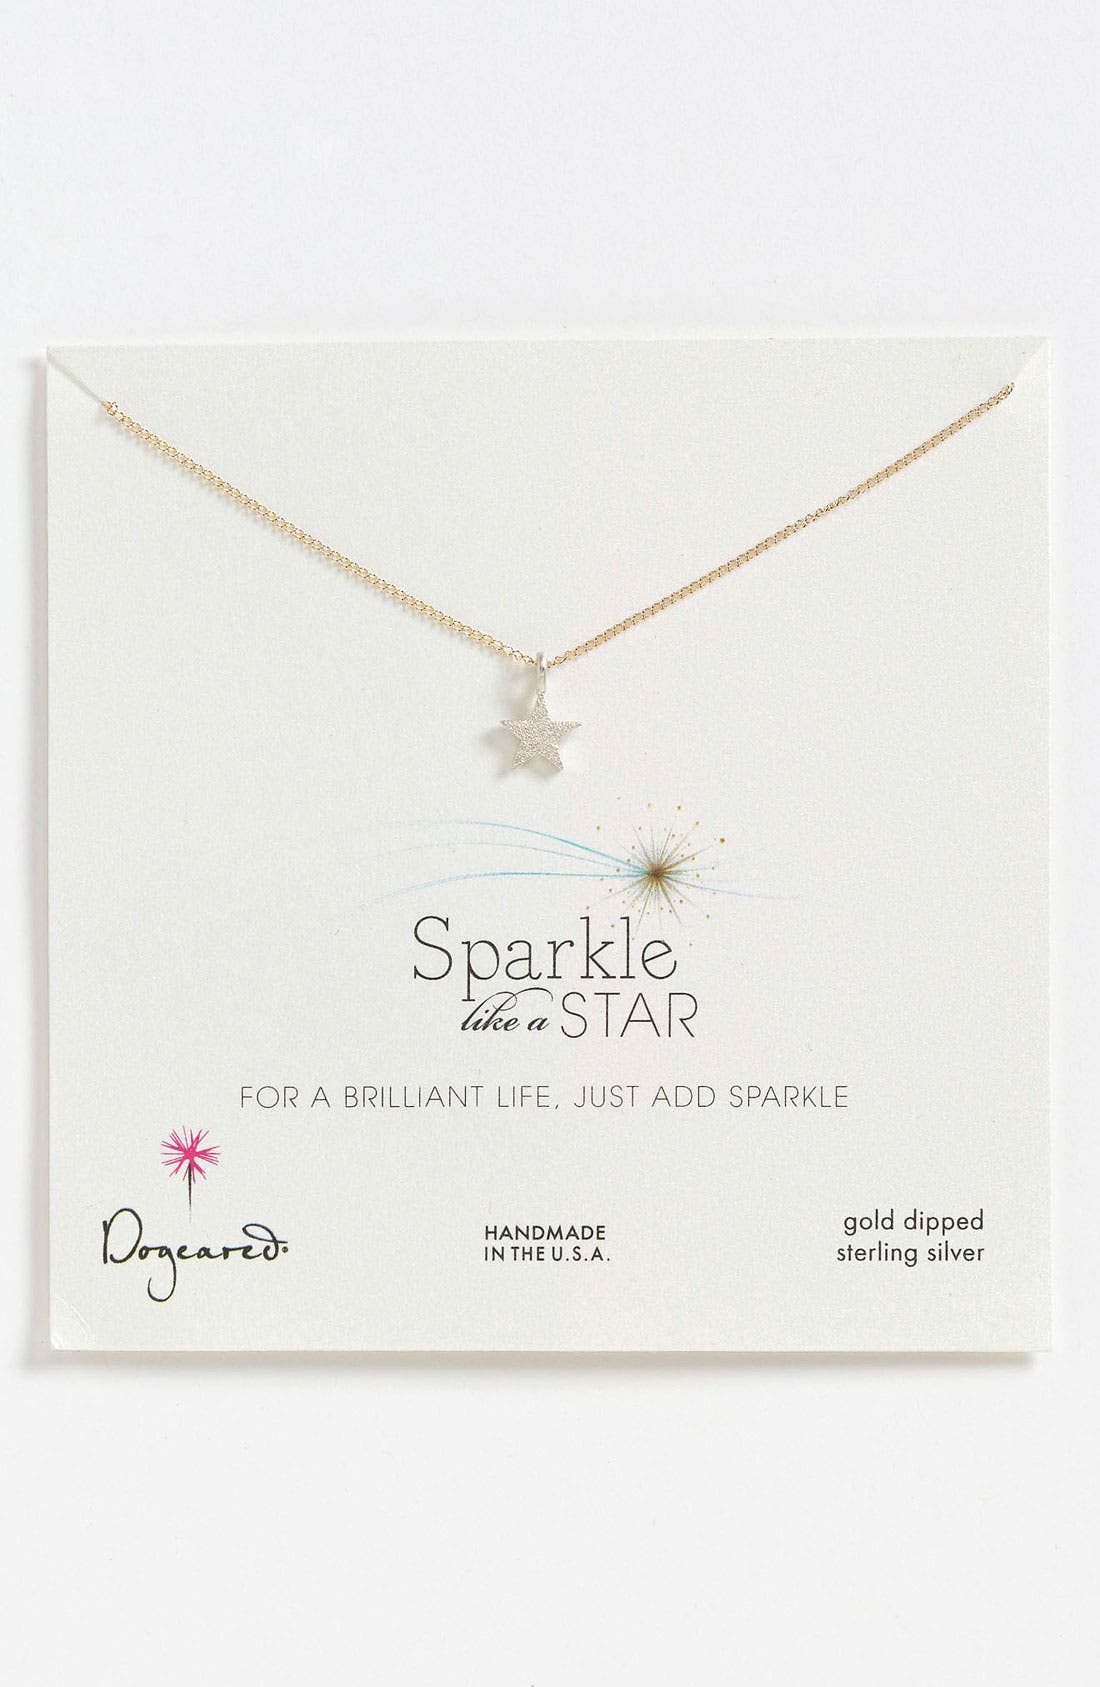 Alternate Image 1 Selected - Dogeared 'Sparkle like a Star' Star Pendant Necklace